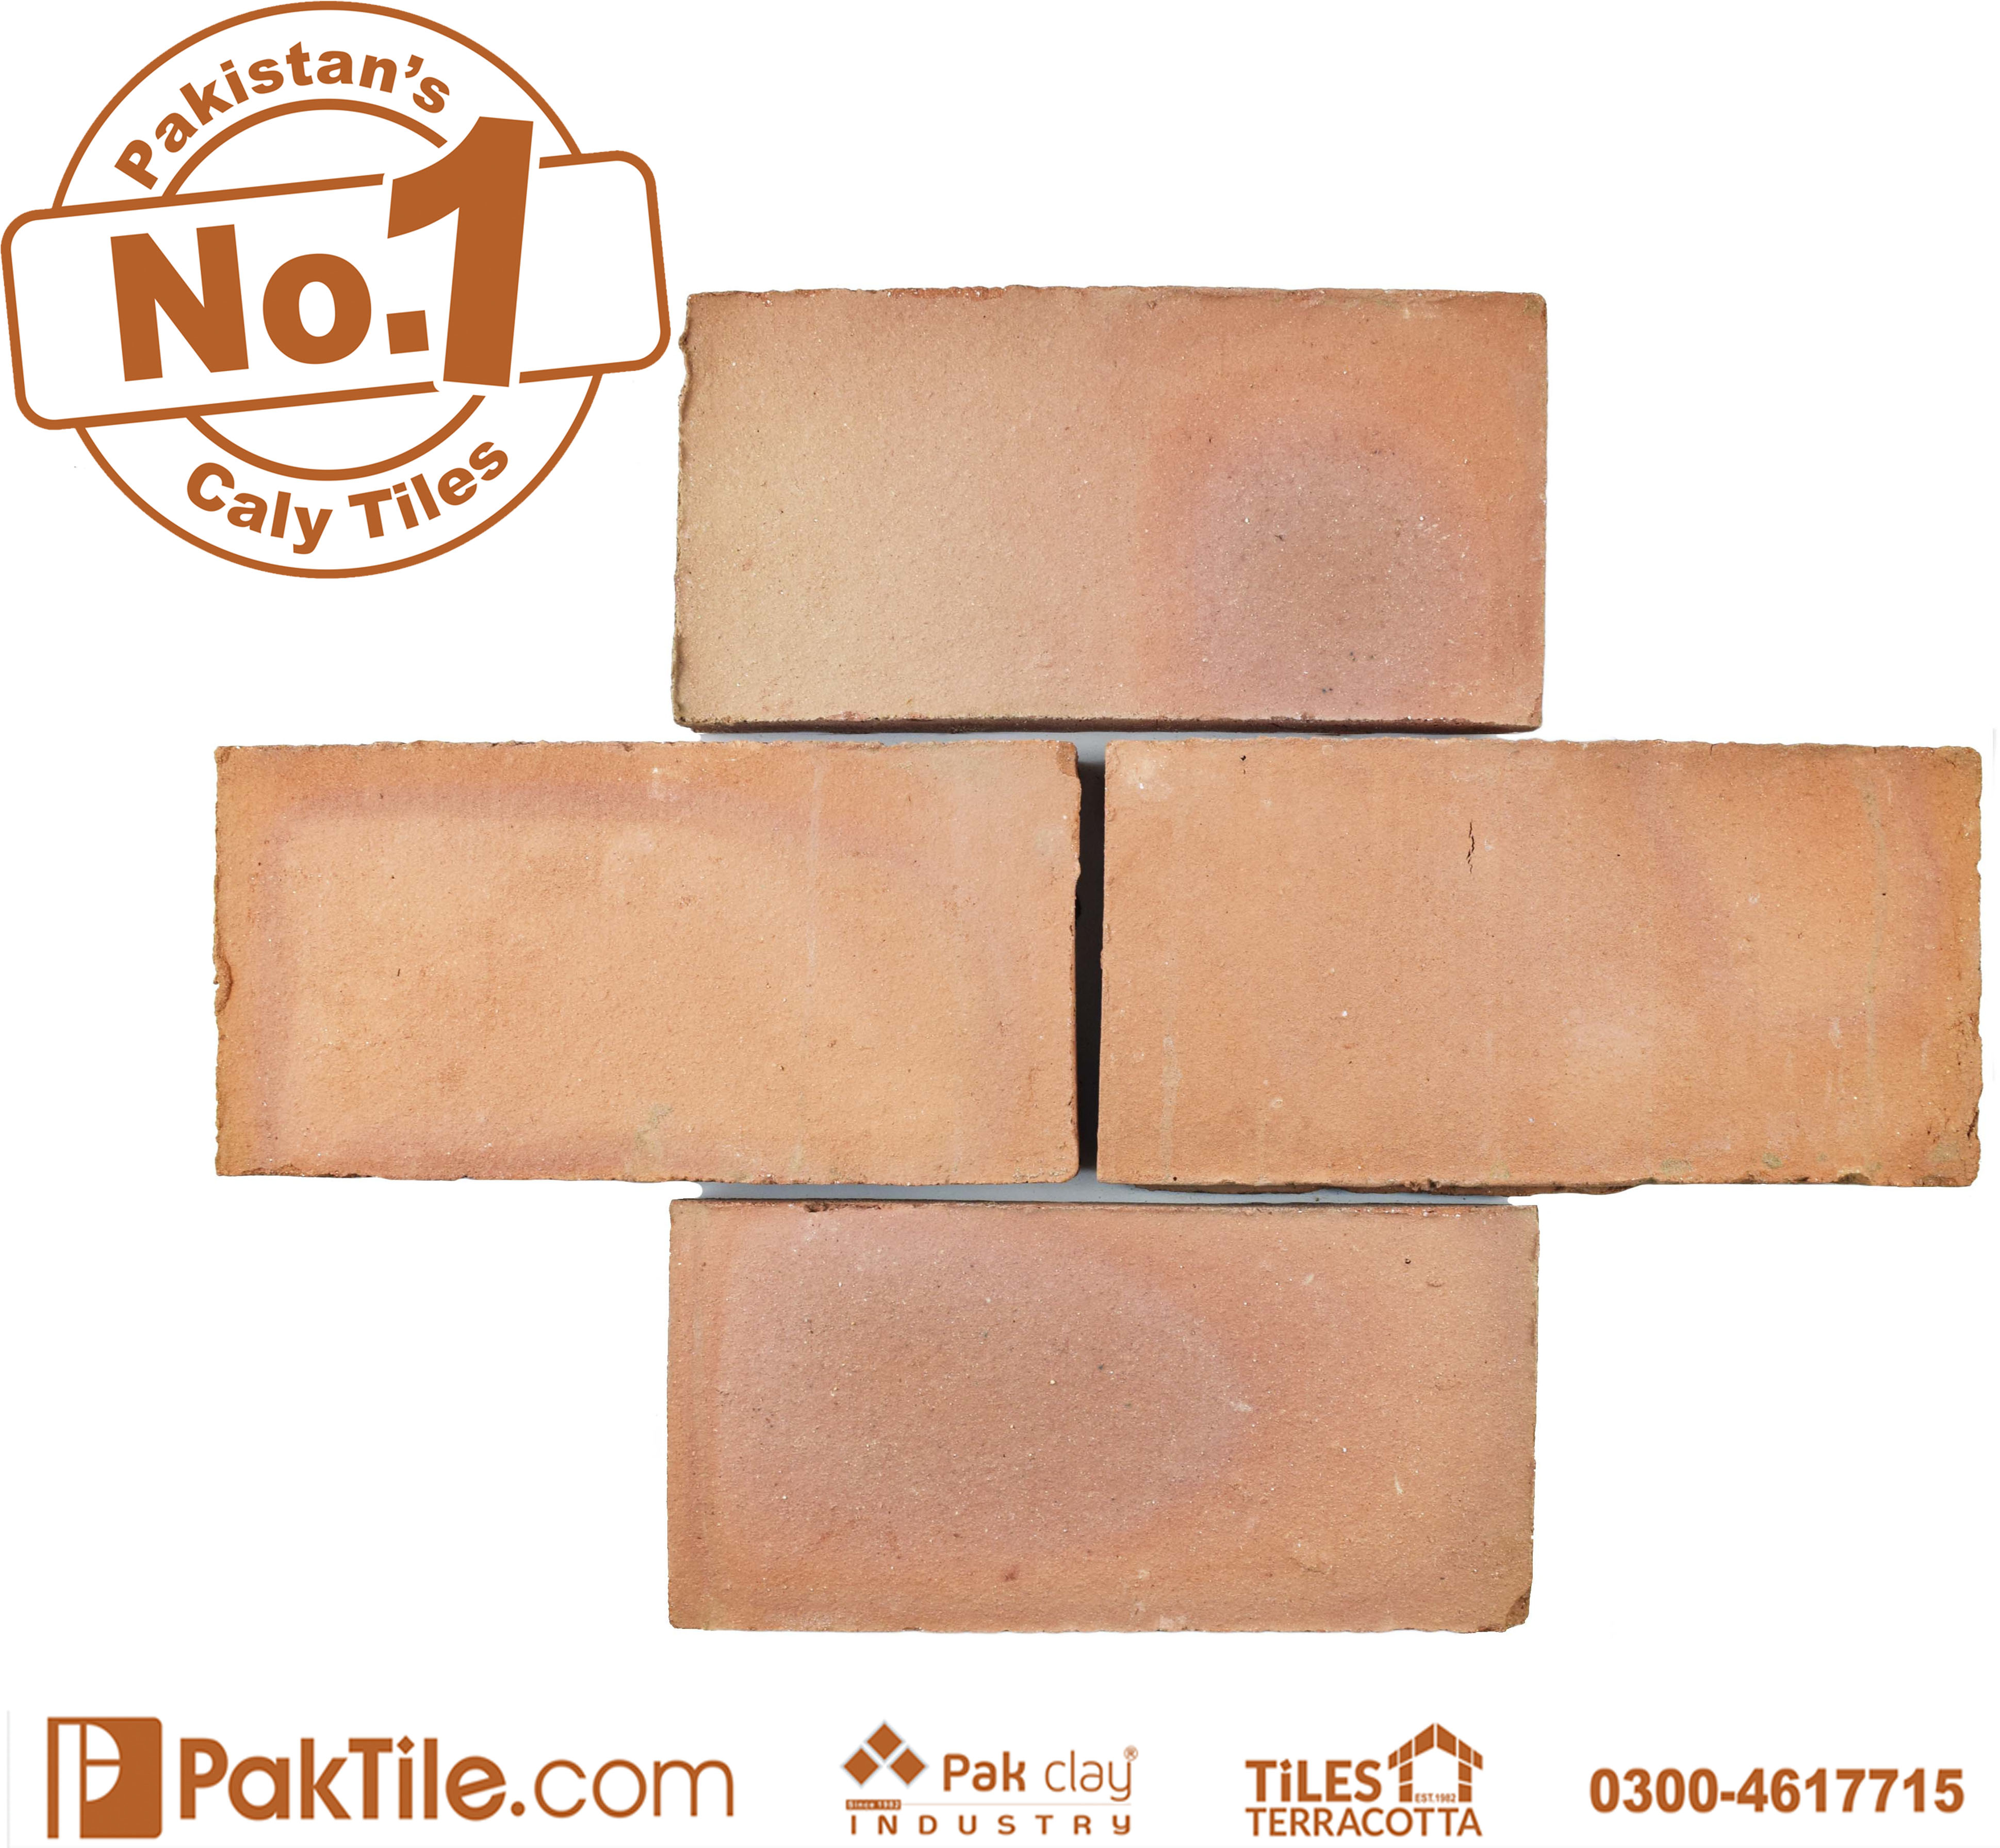 2 Pak Clay Garage Terracotta Tiles Design Prices Outlet in Karachi Pakistan Images